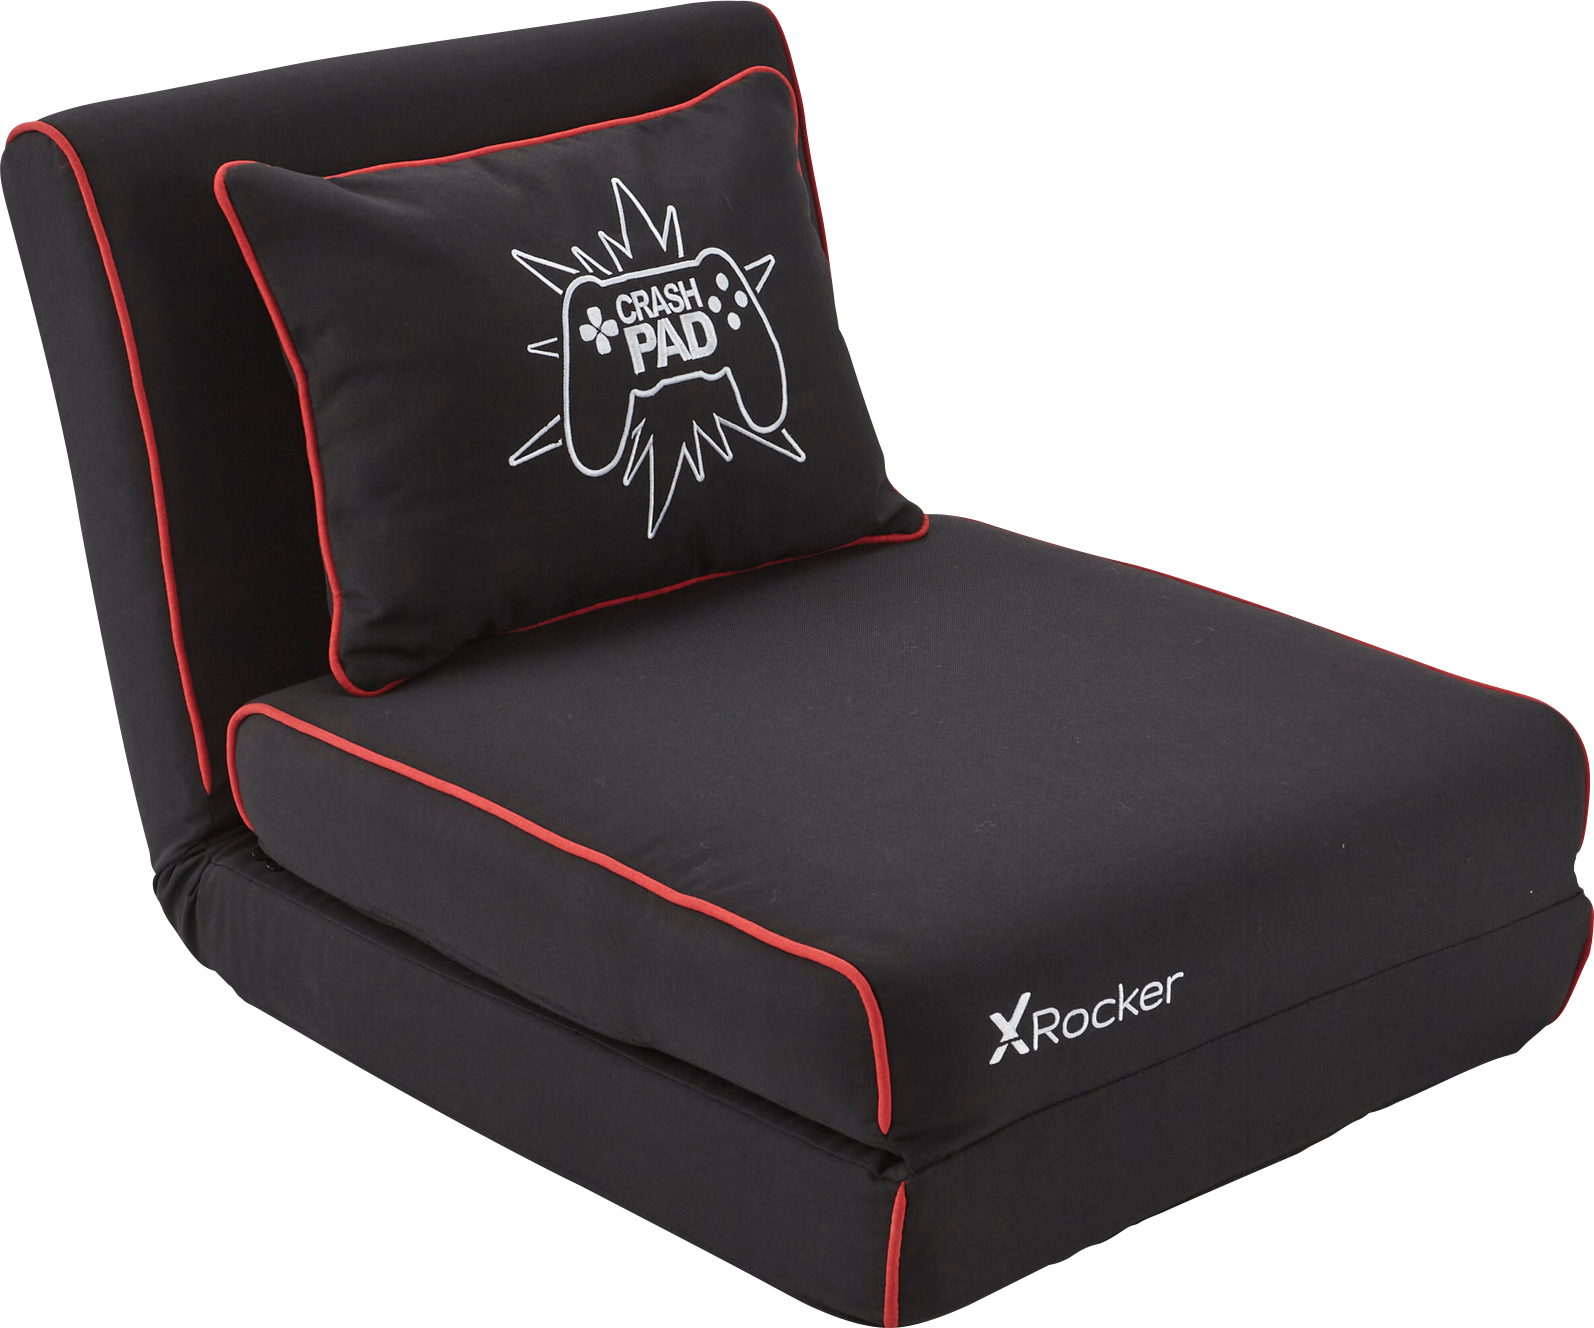 X-Rocker Crash Pad JR Gaming Fold Out Sofa Bed Level up your comfort with this plush, compact floor gaming chair that can fold out to double as a guest bed.